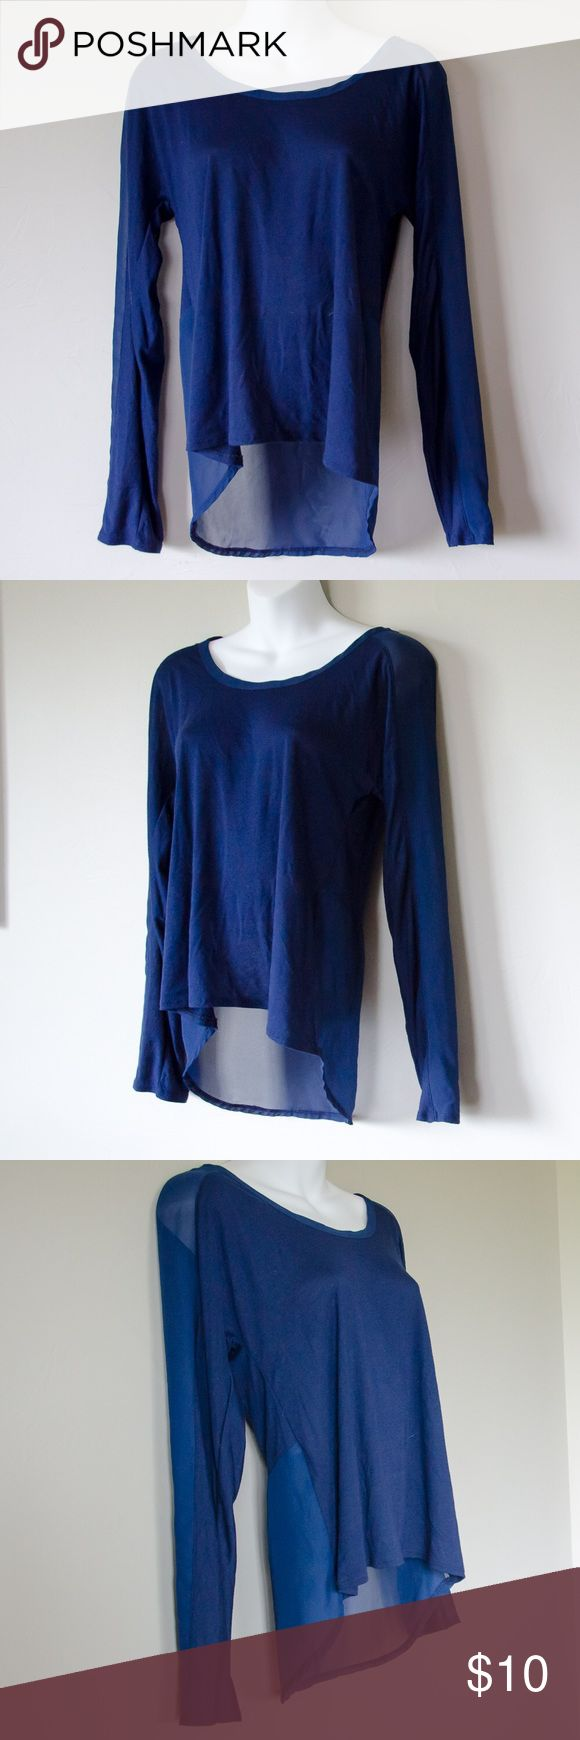 Hi-Low Sheer Detail Shirt Excellent condition soft and lightweight mixed media hi-low top. Sheer accents on sleeve and lower part of back. Beautiful blue color! Perfect for spring or cooler summer days. Converse Tops Tees - Long Sleeve